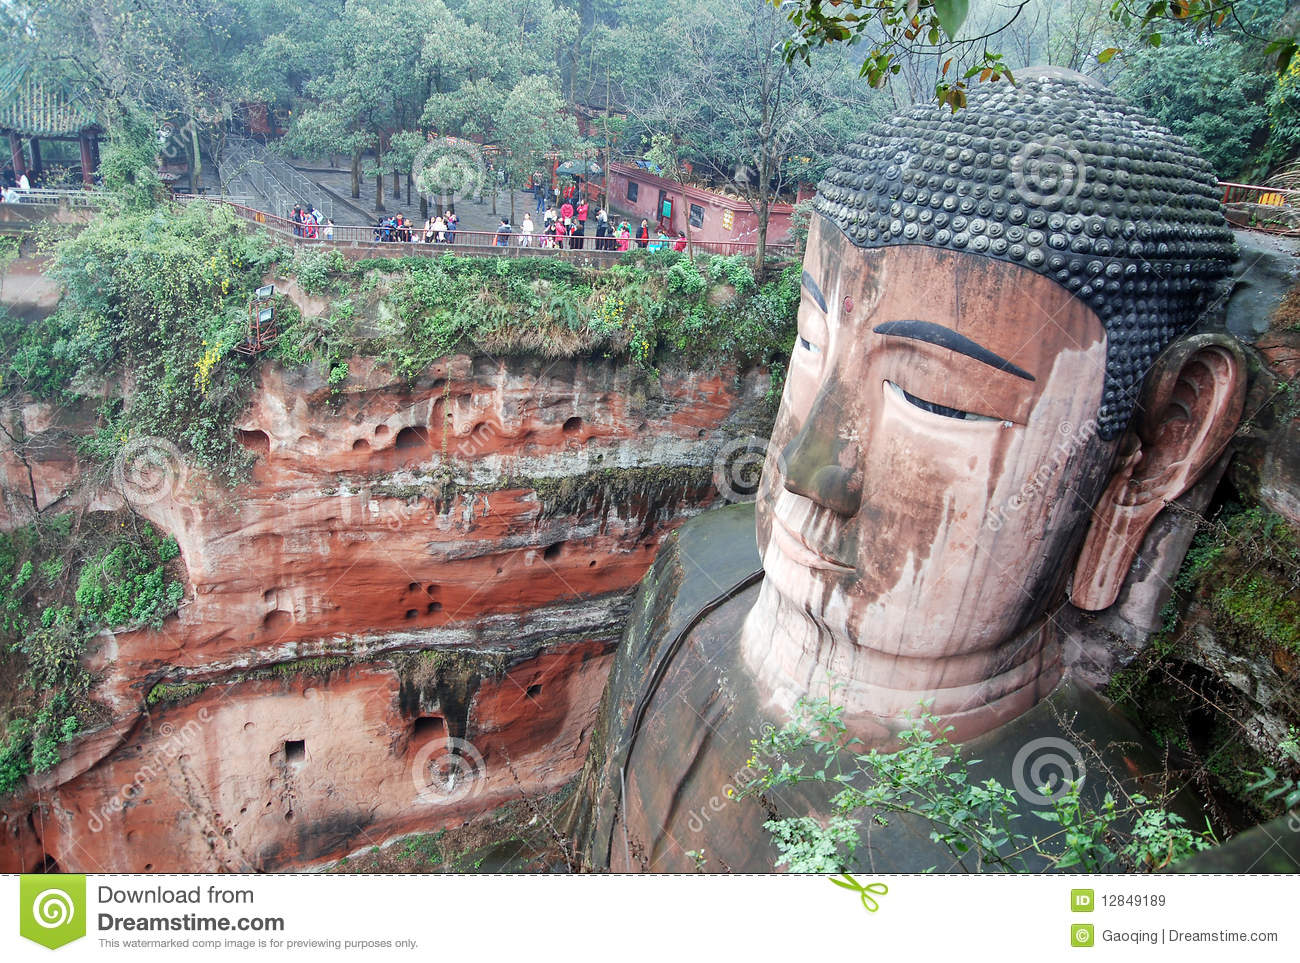 Leshan Giant Buddha in Mt.Emei